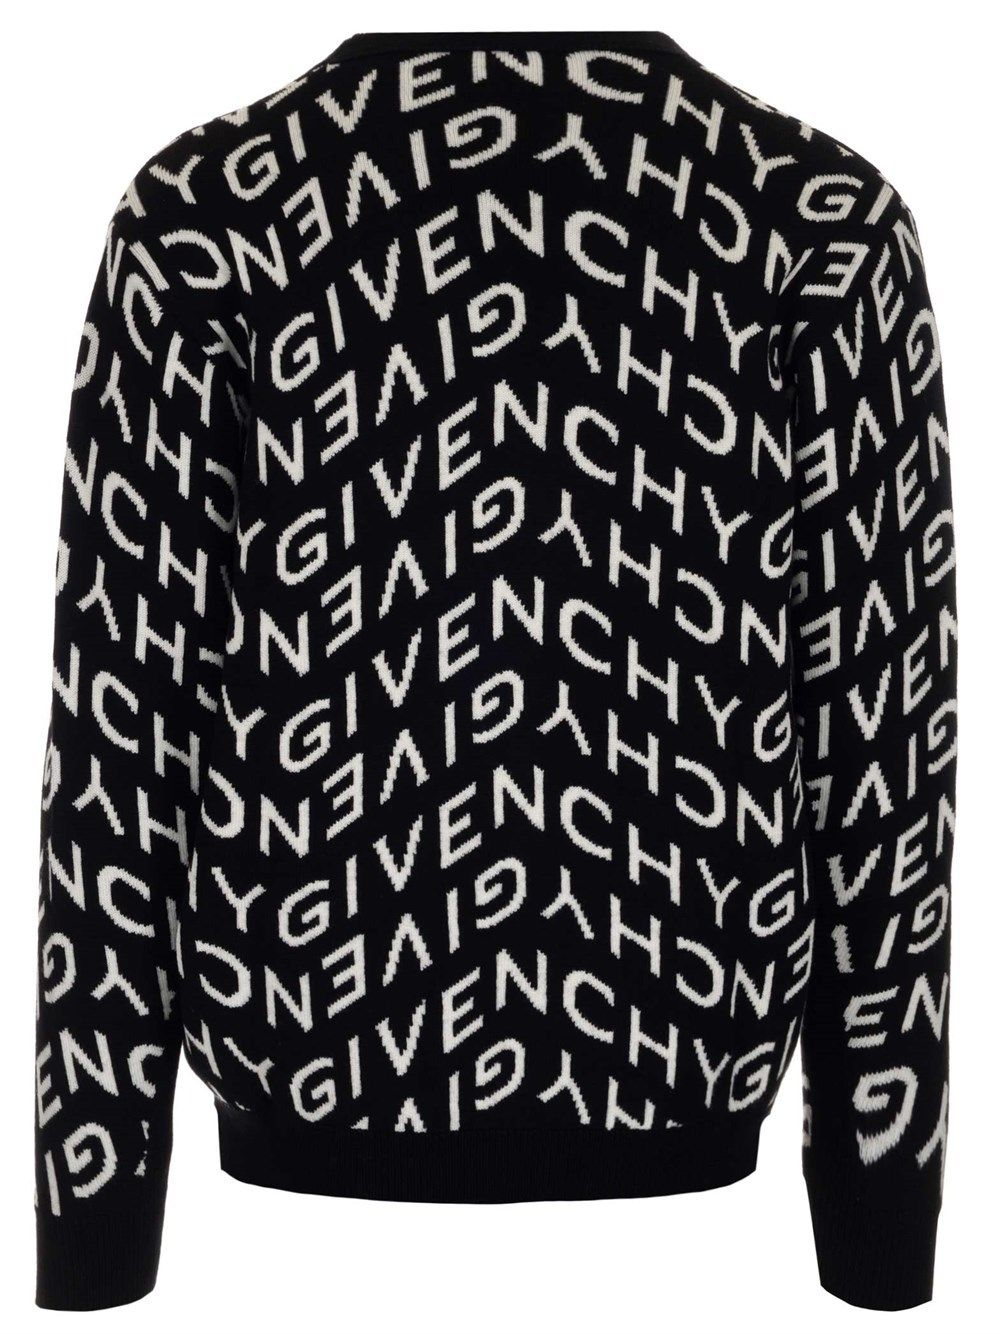 GIVENCHY Knits GIVENCHY MEN'S MULTICOLOR OTHER MATERIALS CARDIGAN